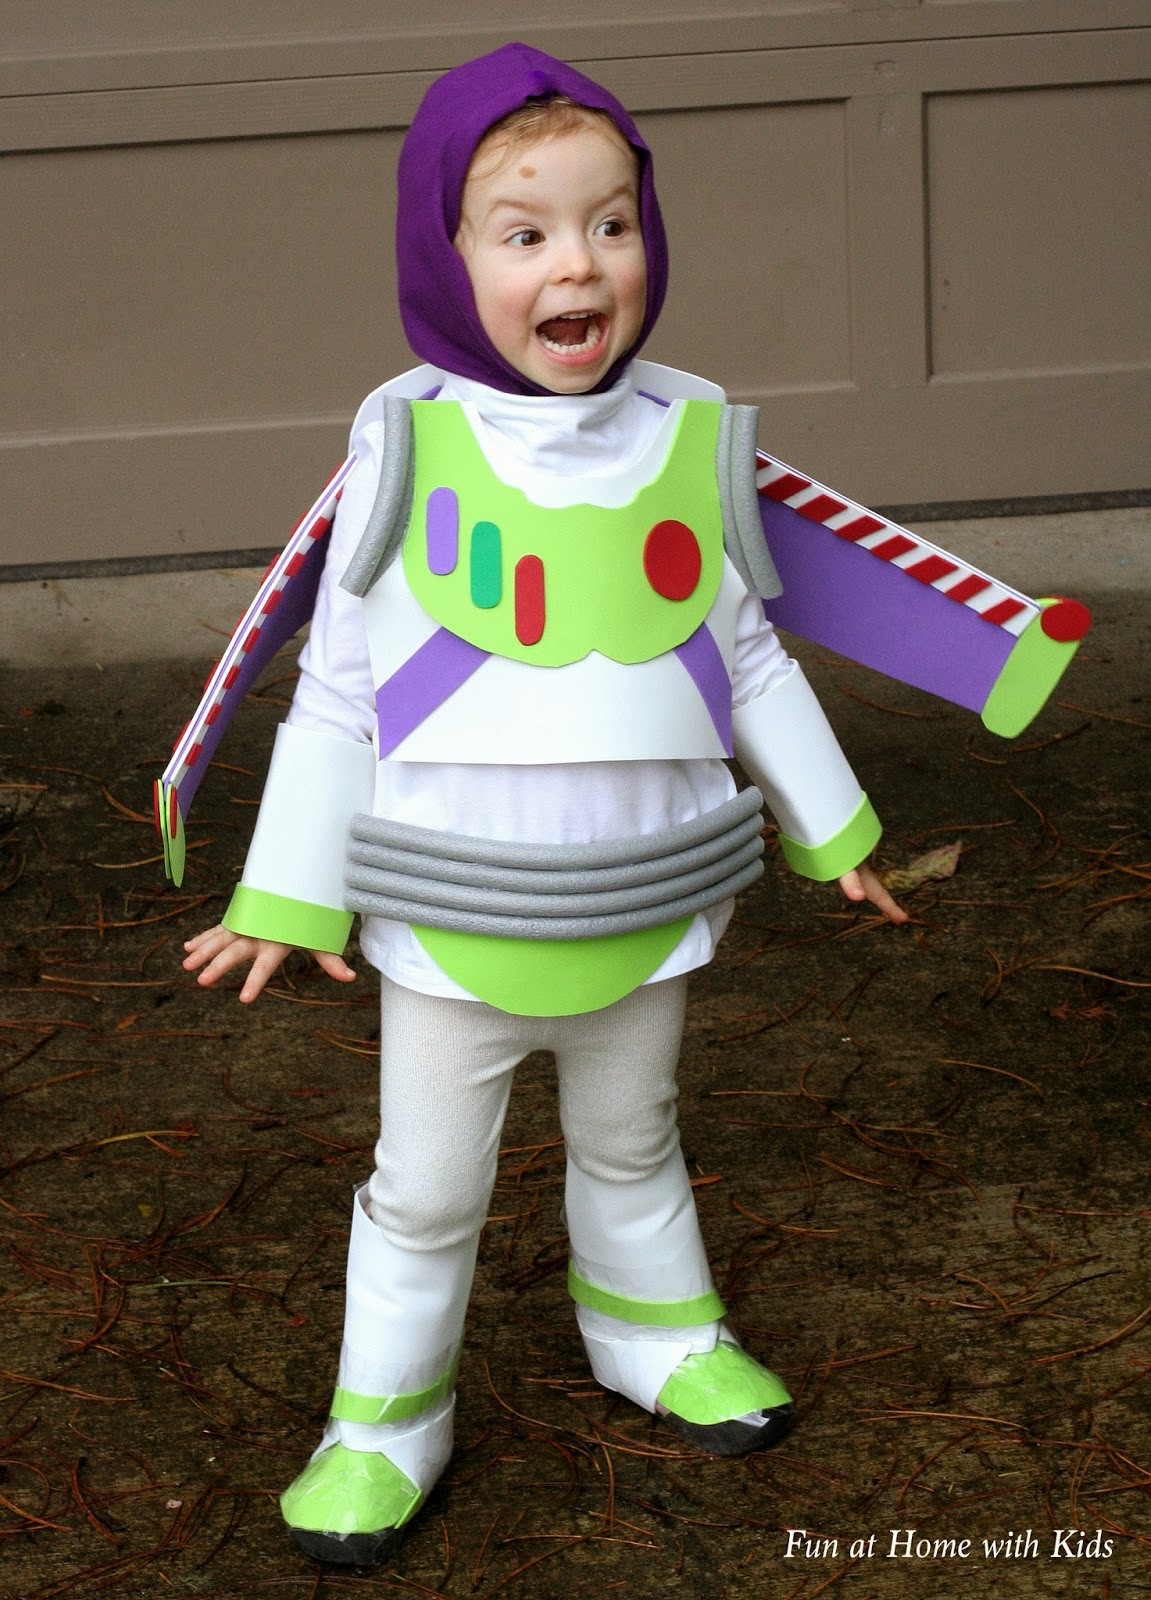 Best ideas about DIY Halloween Costumes Kids . Save or Pin DIY Kids Buzz Lightyear No Sew Halloween Costume Now.